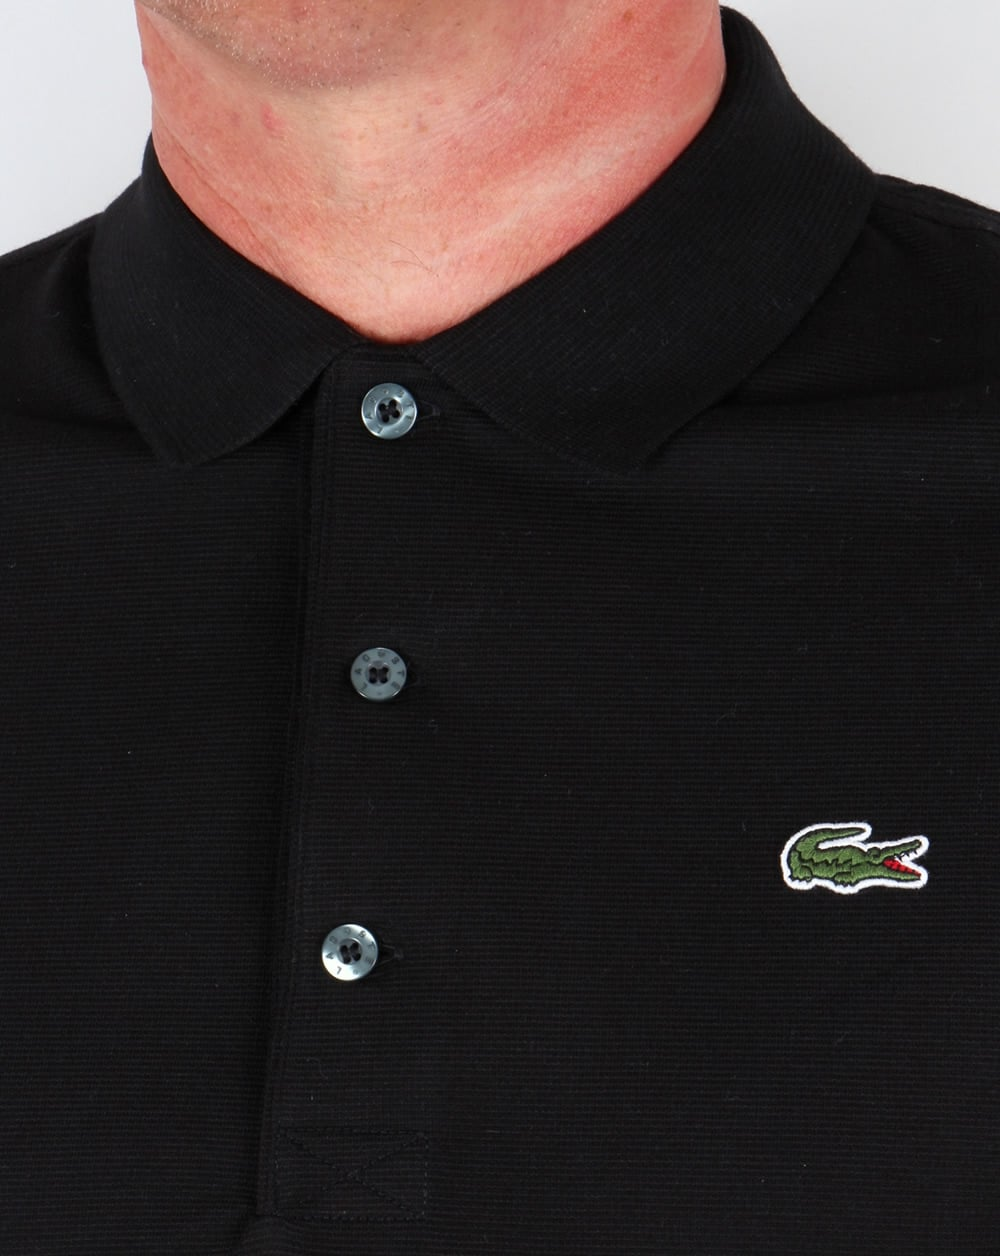 Lacoste Ultra Lightweight Knit Polo Shirt Black 80s Casual Classics